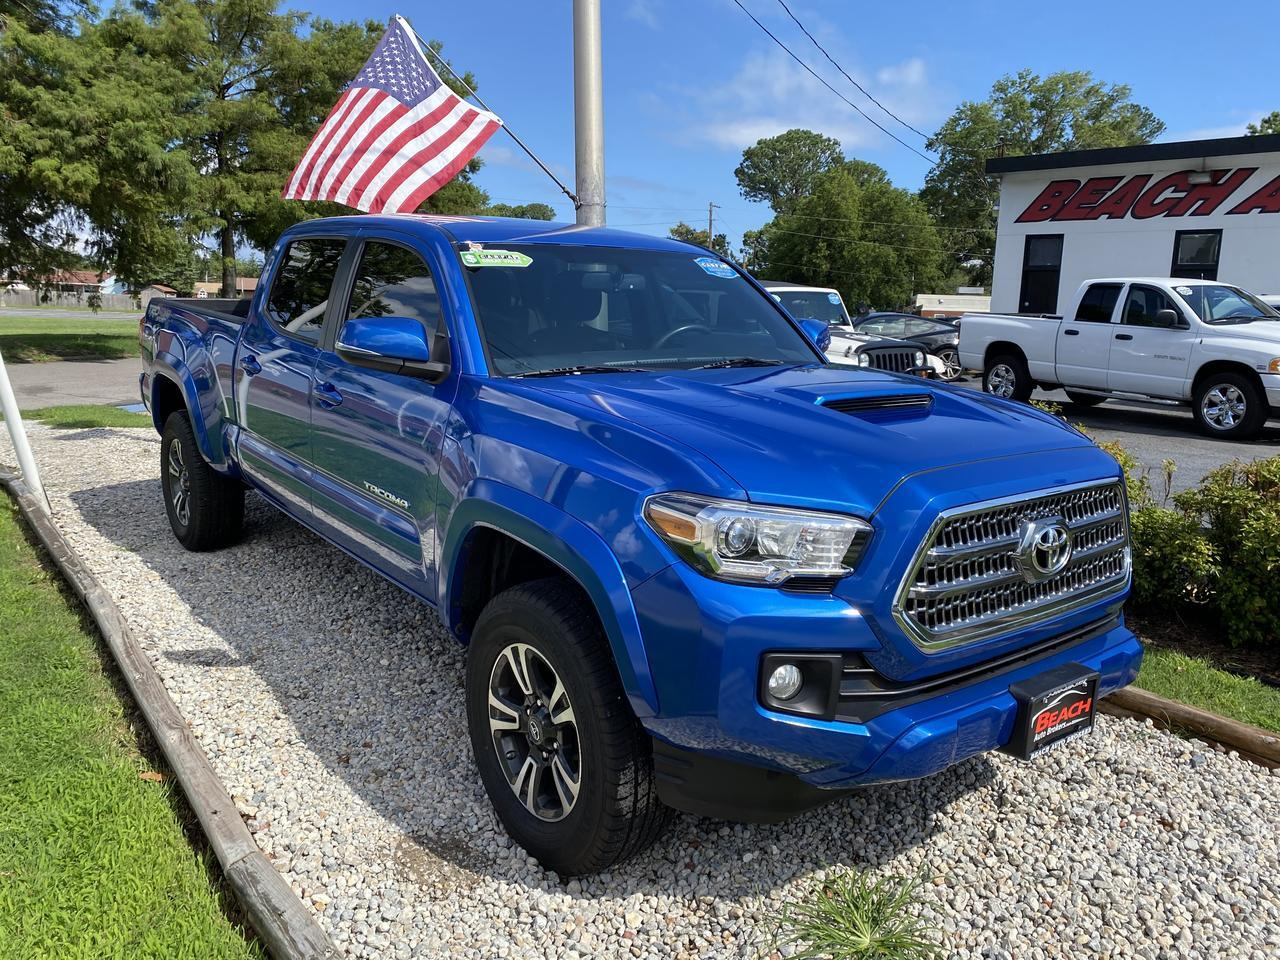 2017 TOYOTA TACOMA TRD SPORT DOUBLE CAB 4X4, WARRANTY, NAV, BLUETOOTH, TOW PKG, SIRIUS RADIO, BACKUP CAM, 1 OWNER! Norfolk VA